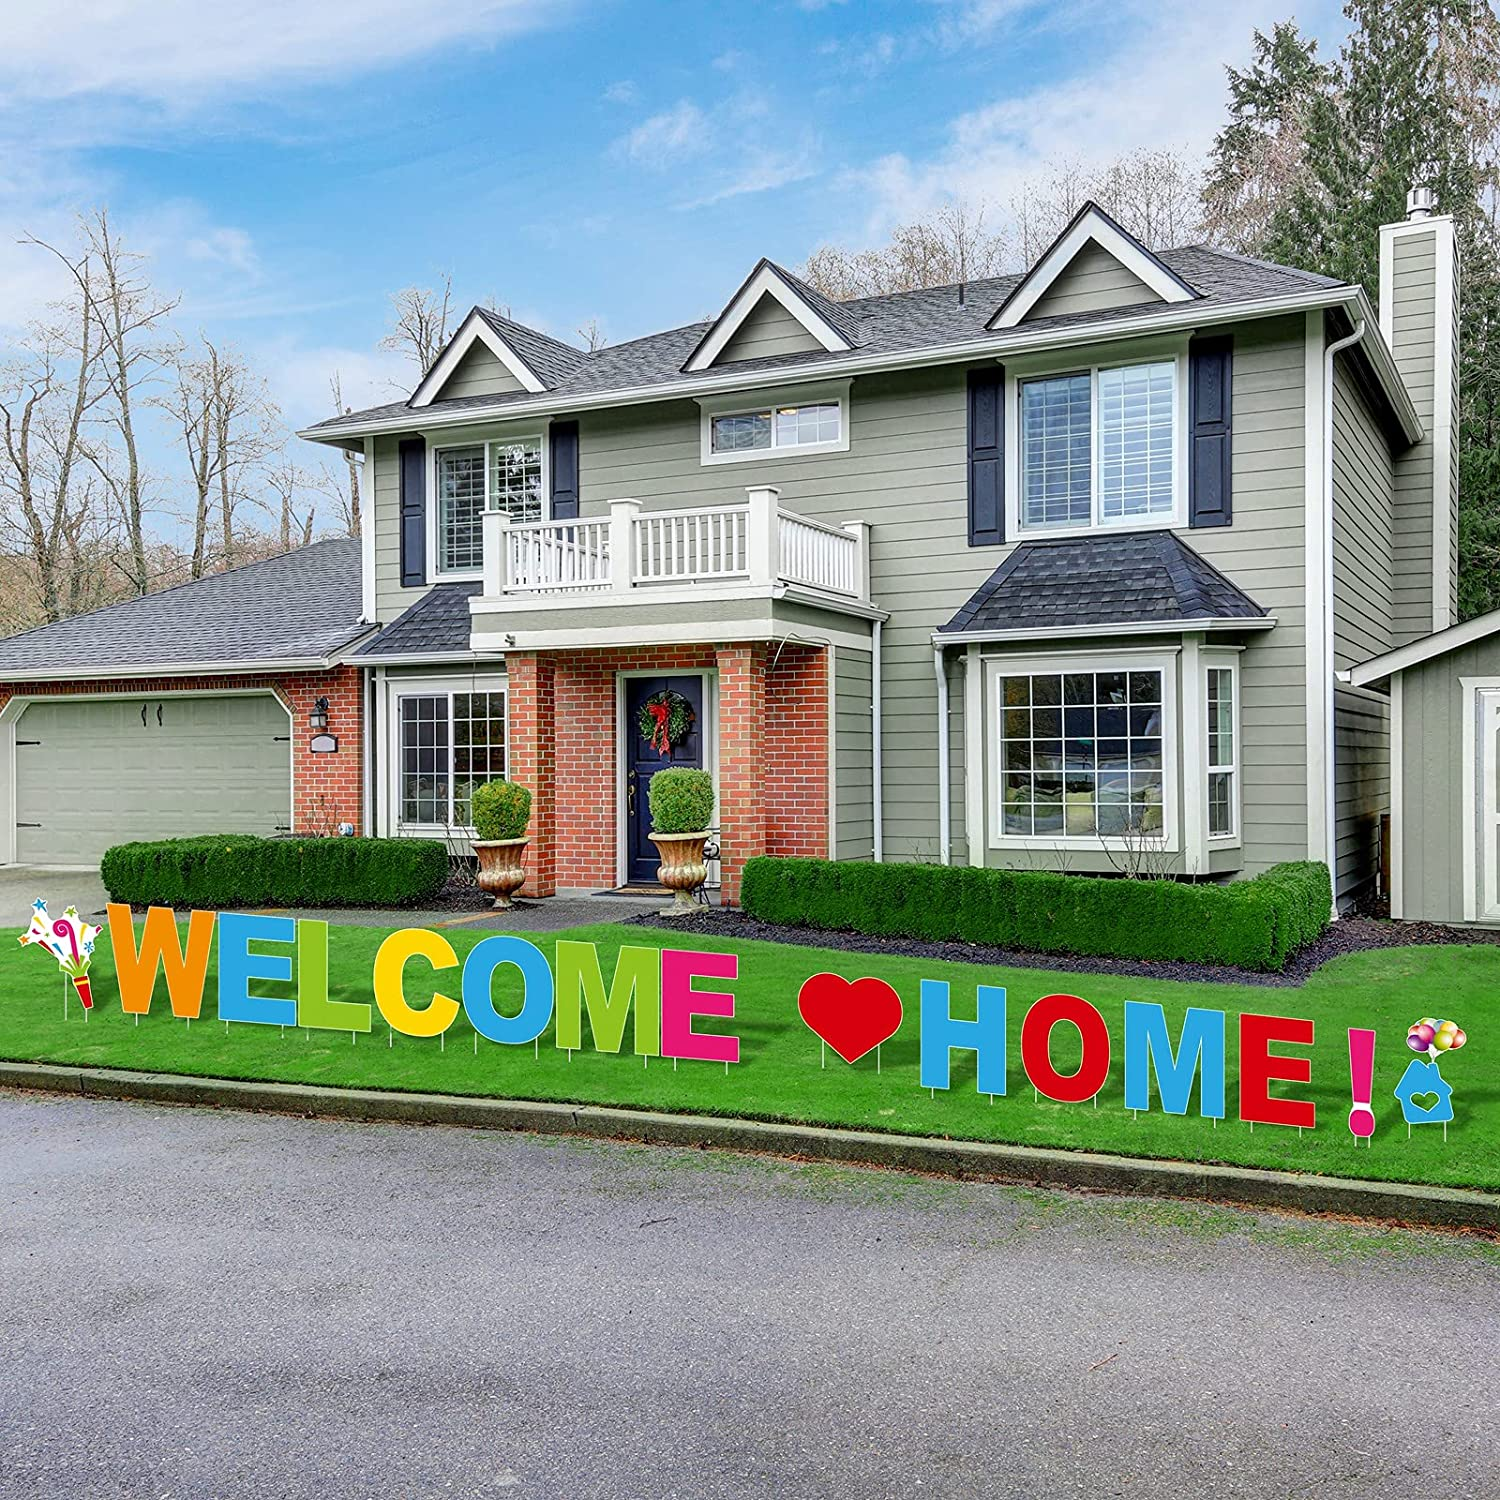 RUODON Welcome Home Yard Signs 18 Inches Tall Welcome Home Yard Signs with Stakes Welcome Home Letters Outdoor Lawn Decorations Colorful Welcome Home Letters Yard Signs Lawn Sign Party Decorations